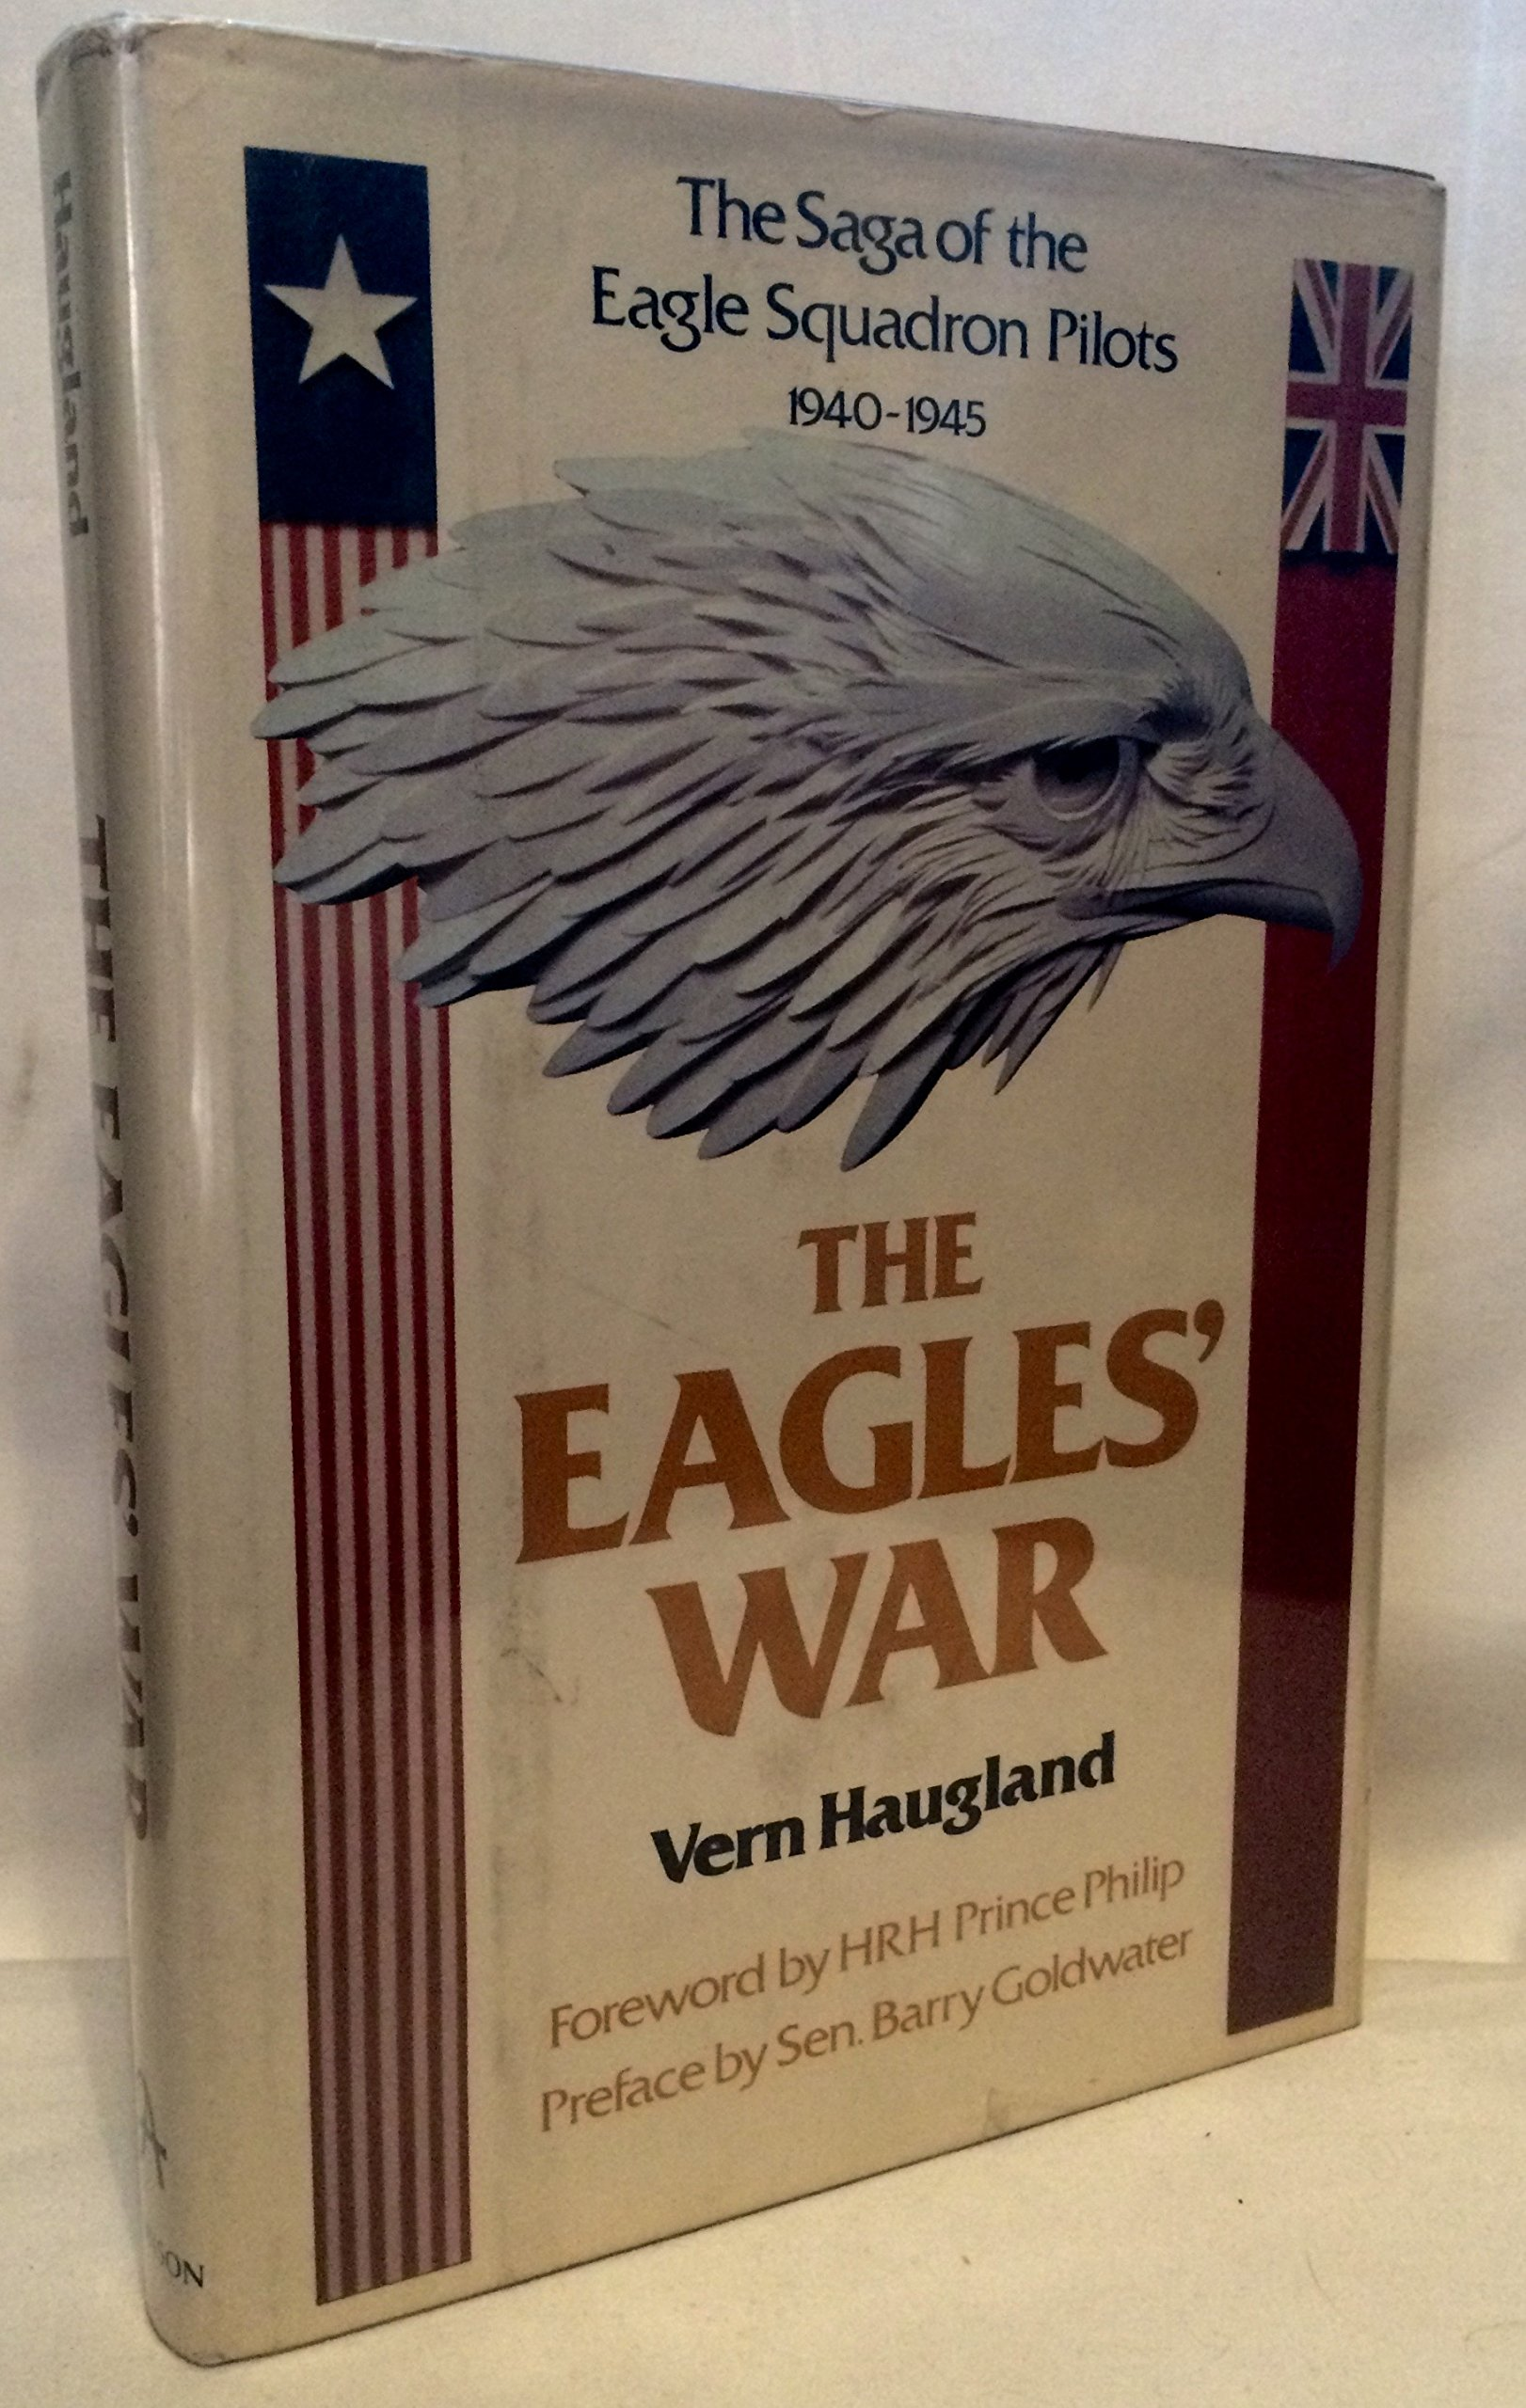 The Eagles' War: The Saga of the Eagle Squadron Pilots 1940